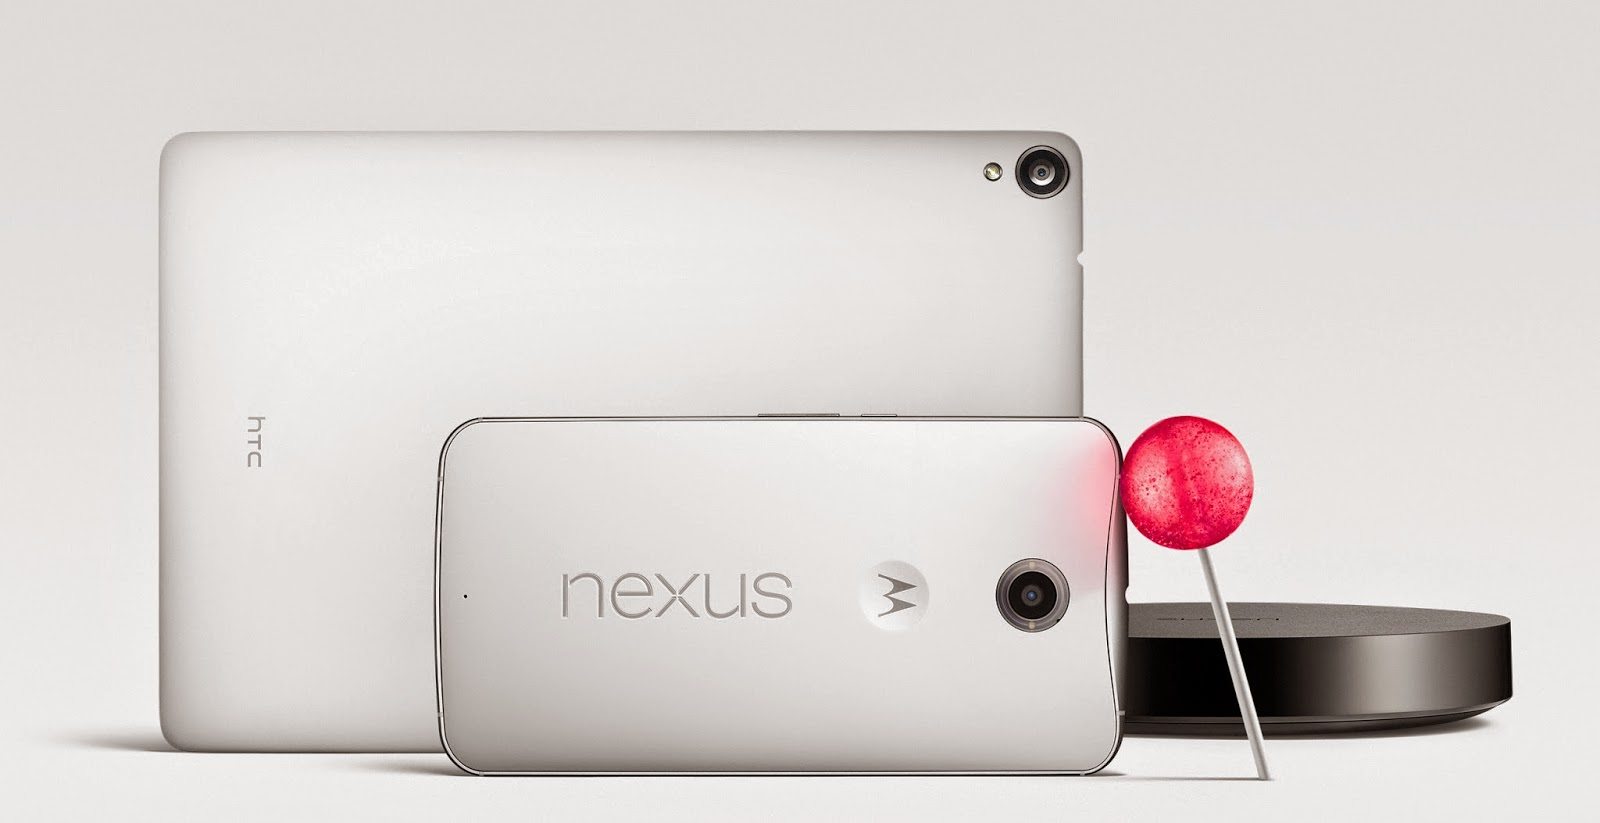 Newer Nexus 6 Smartphone Units 'Finally' Hit US: Where to buy and What are the Carrier Options Available?